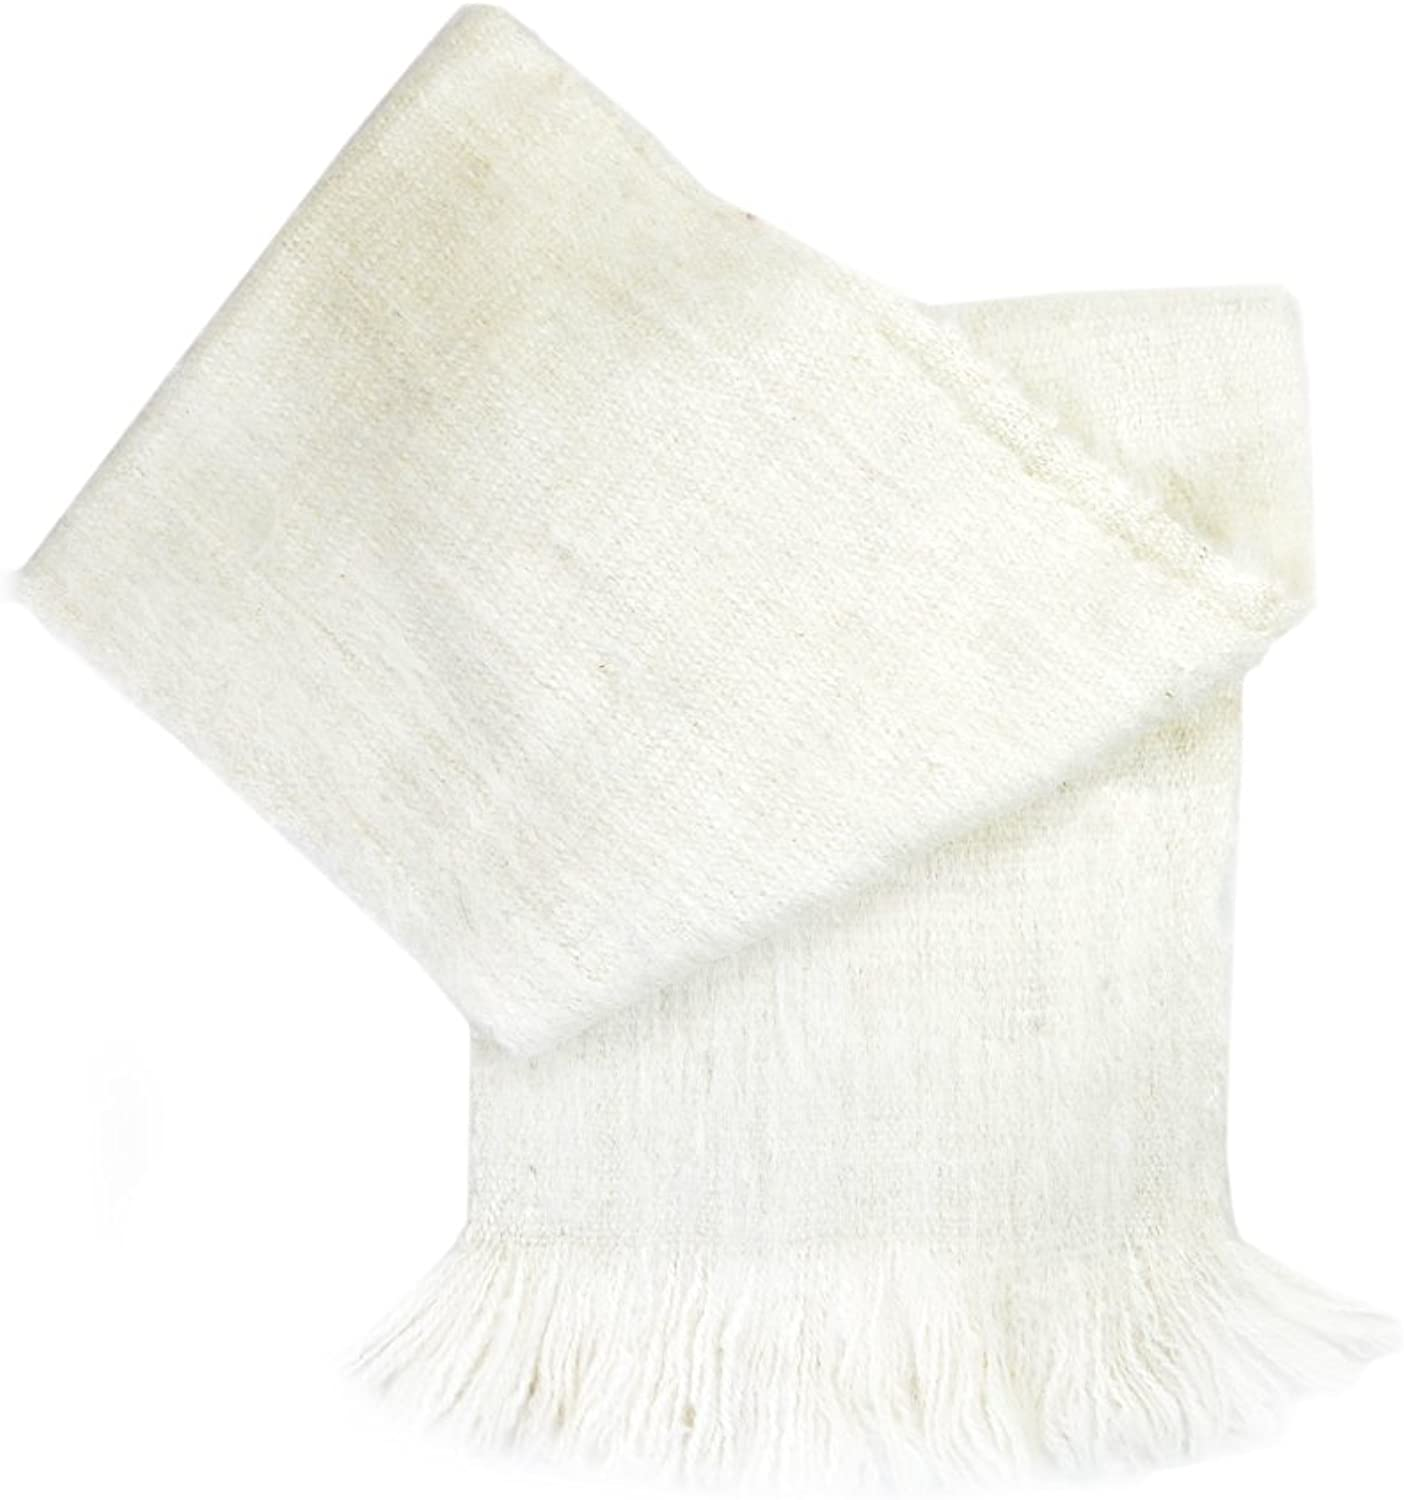 Gamboa  Alpaca Scarf  Soft and Incredibly Warm  First Quality  Snow White with Elegant Fringes